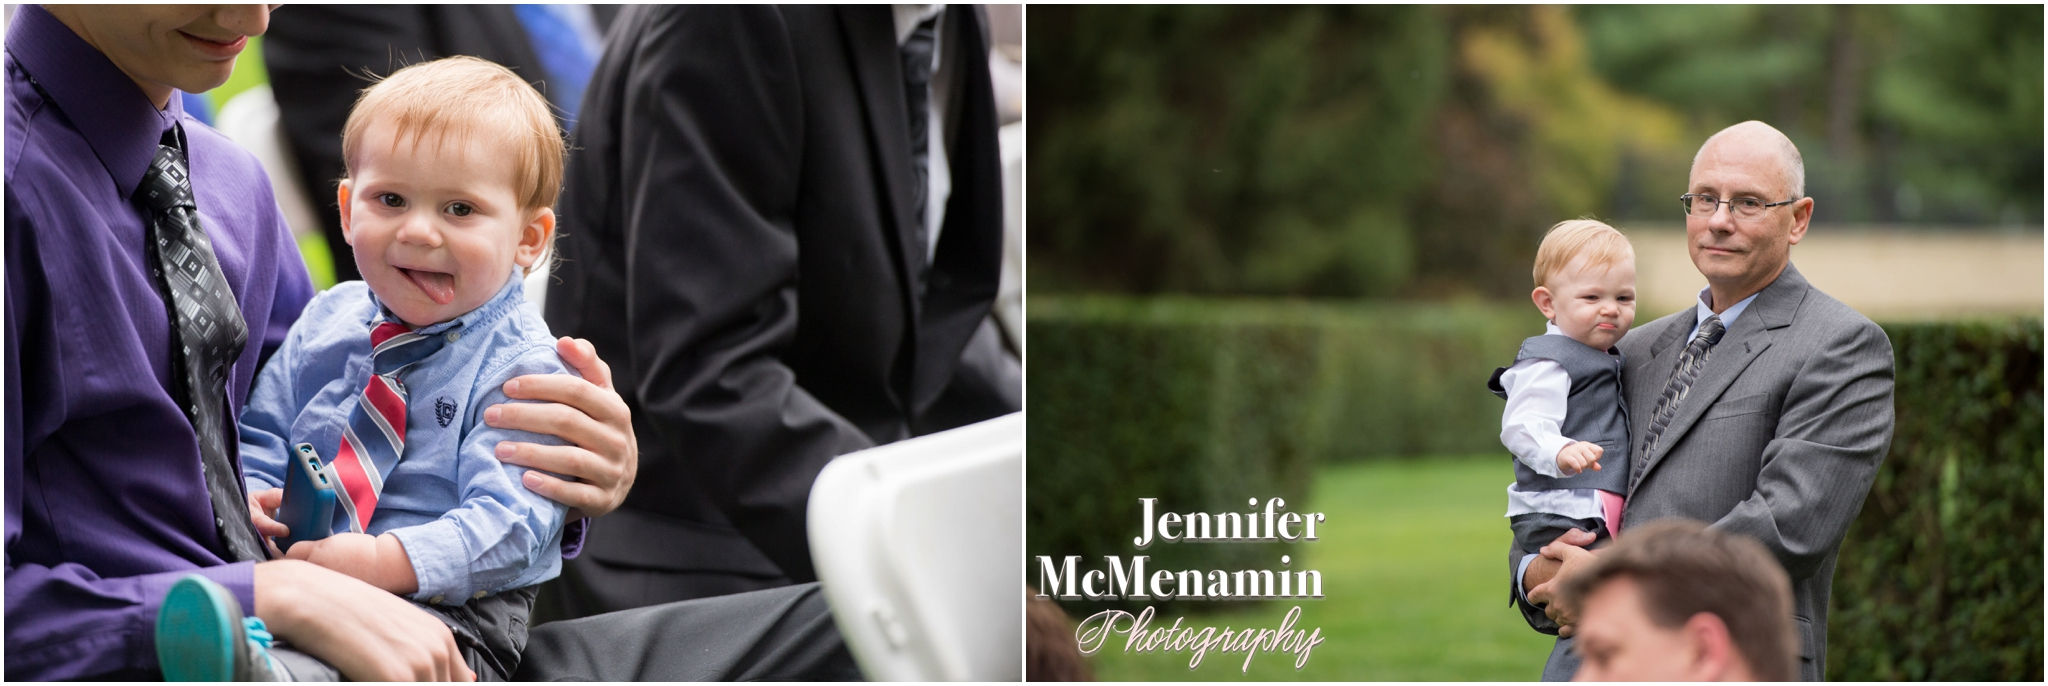 051-HenningMiller_01856-0376_JenniferMcMenaminPhotography_Evergreen-Museum-And-Carriage-House_Evergreen-wedding_Baltimore-wedding-photographer_Baltimore-wedding-photography